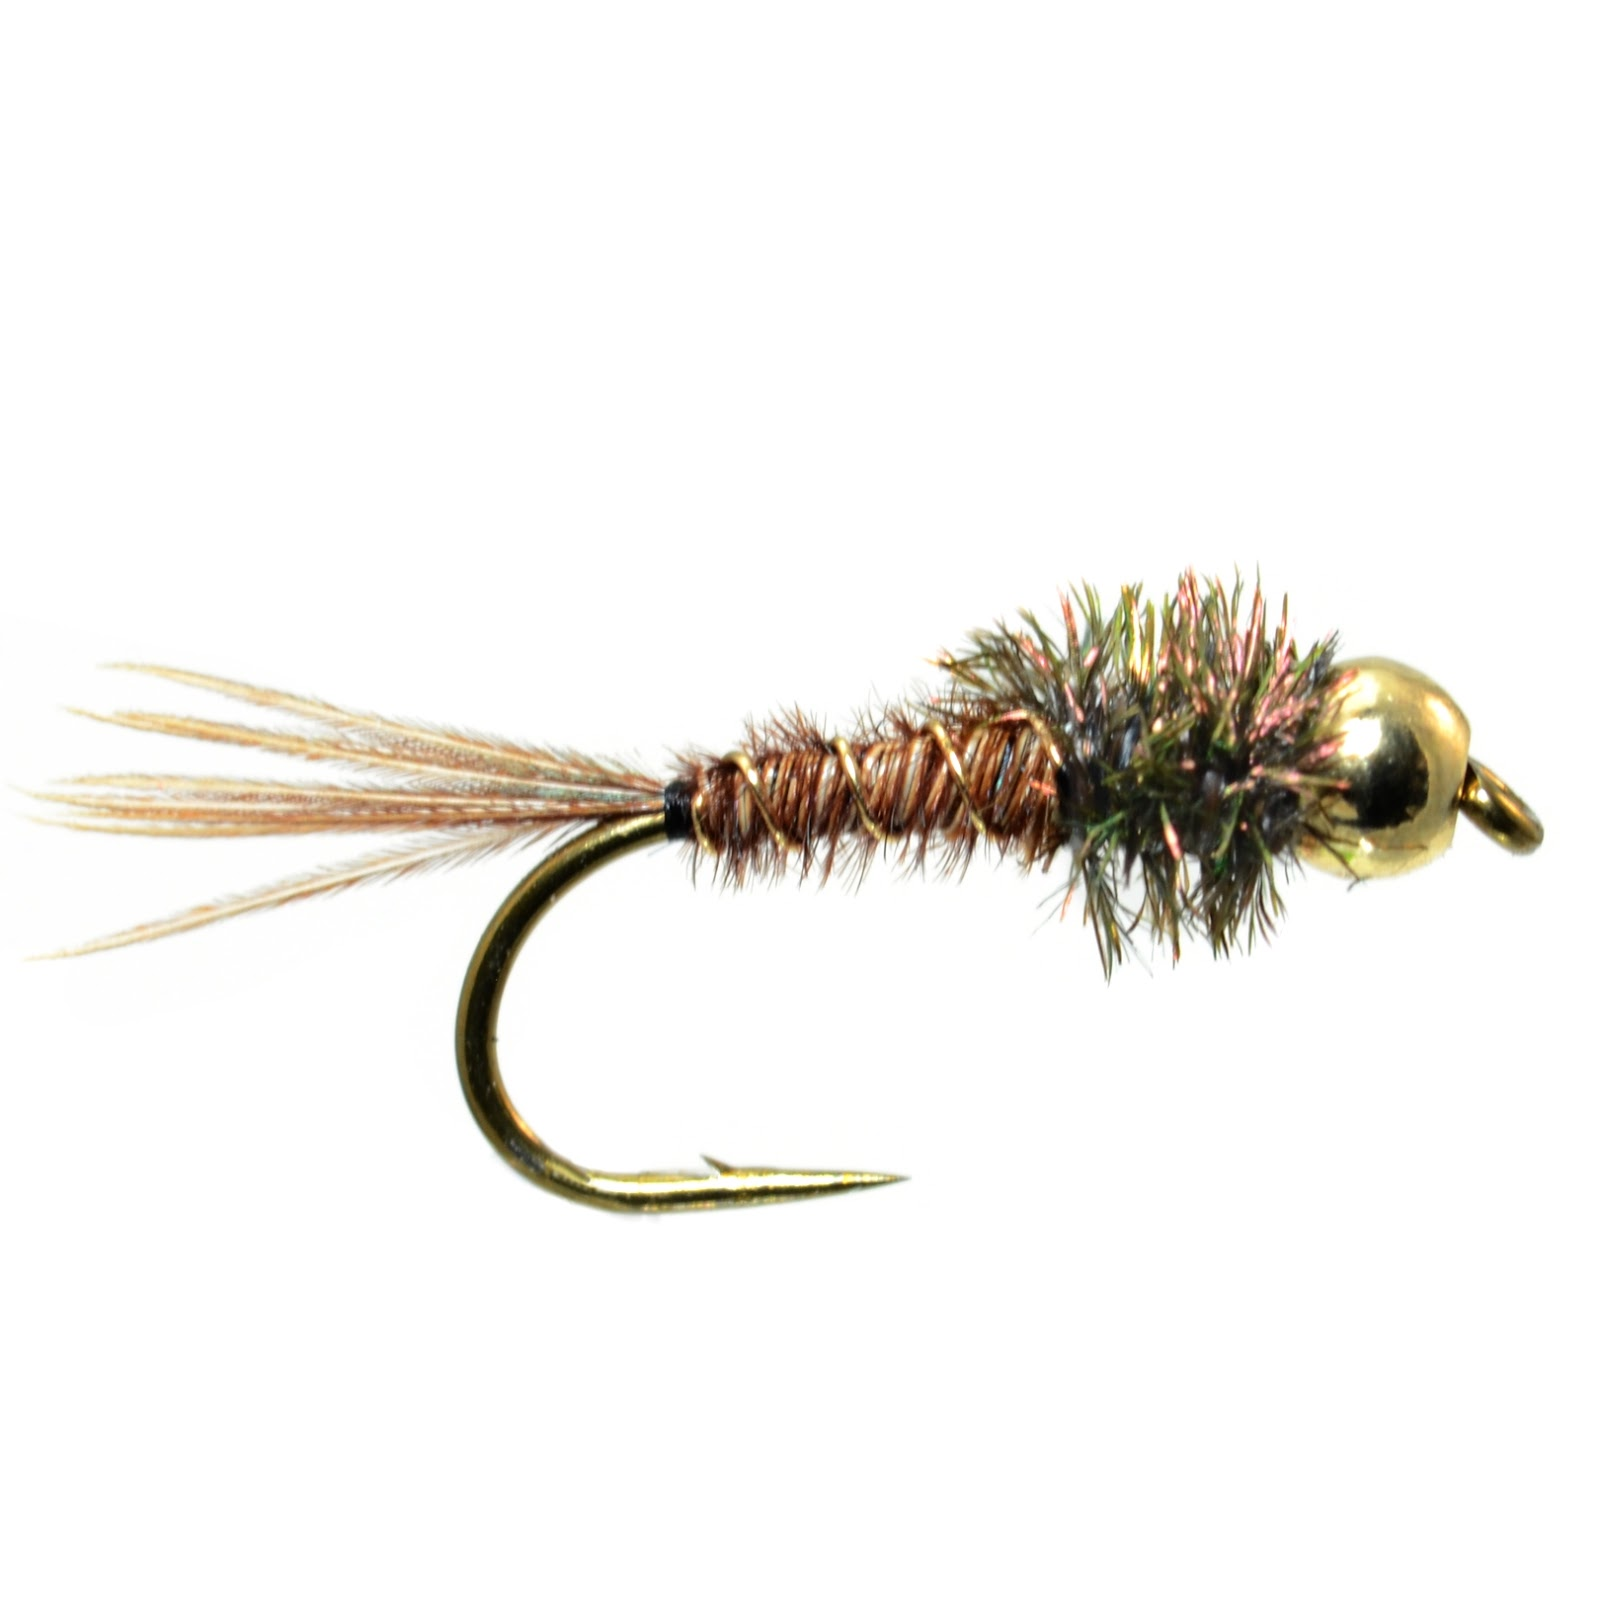 Beginner fly tying easy pheasant tail fly fish food for Beginning fly fishing